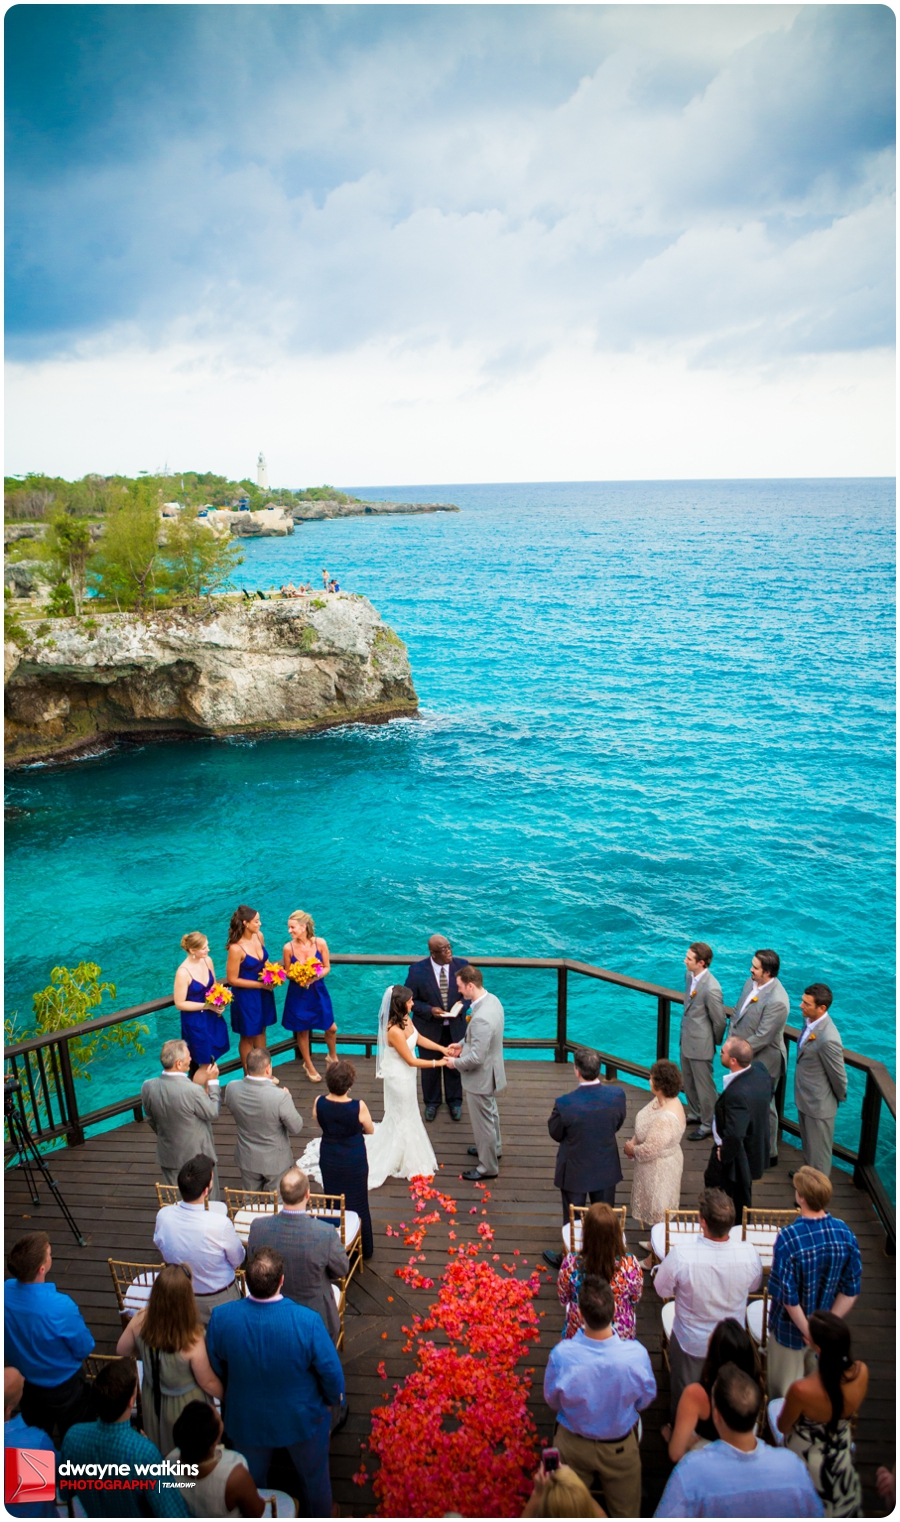 Destination Wedding location Jamaica